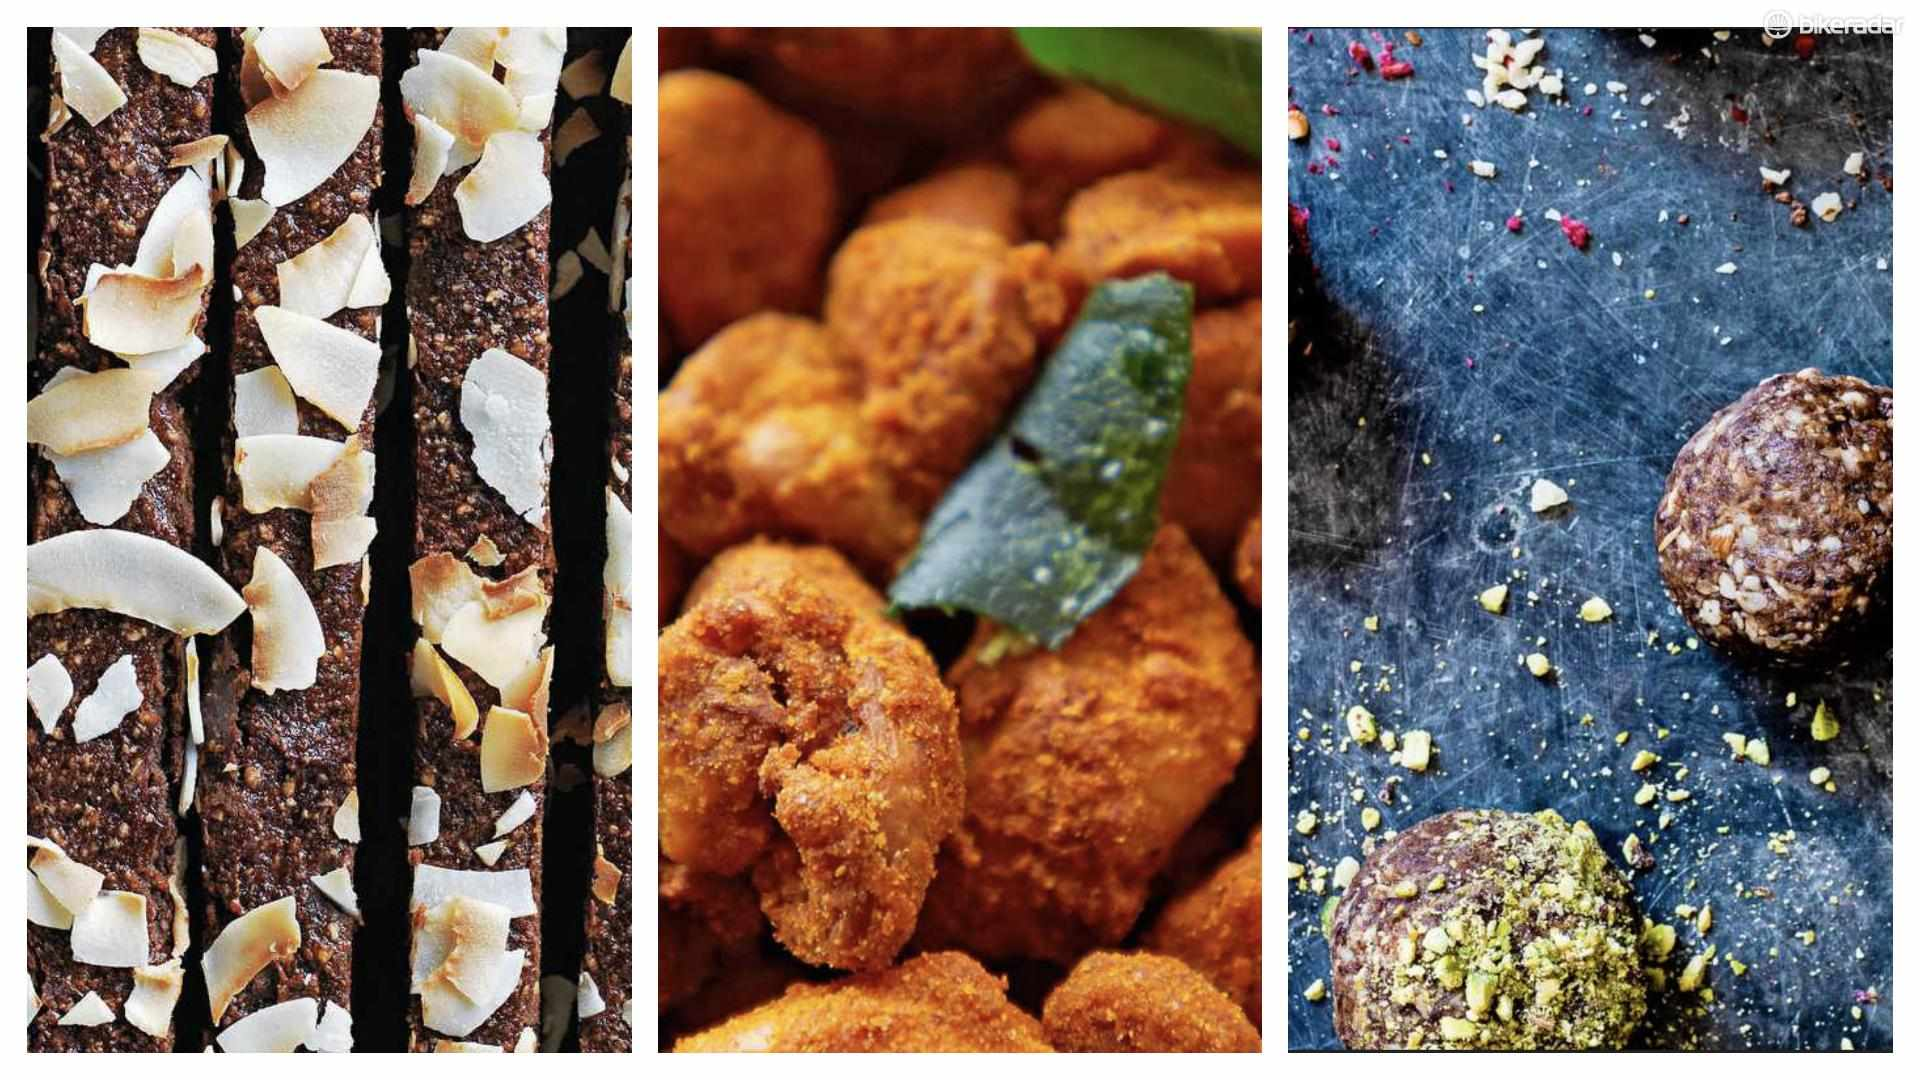 Make your own delicious homemade energy snacks